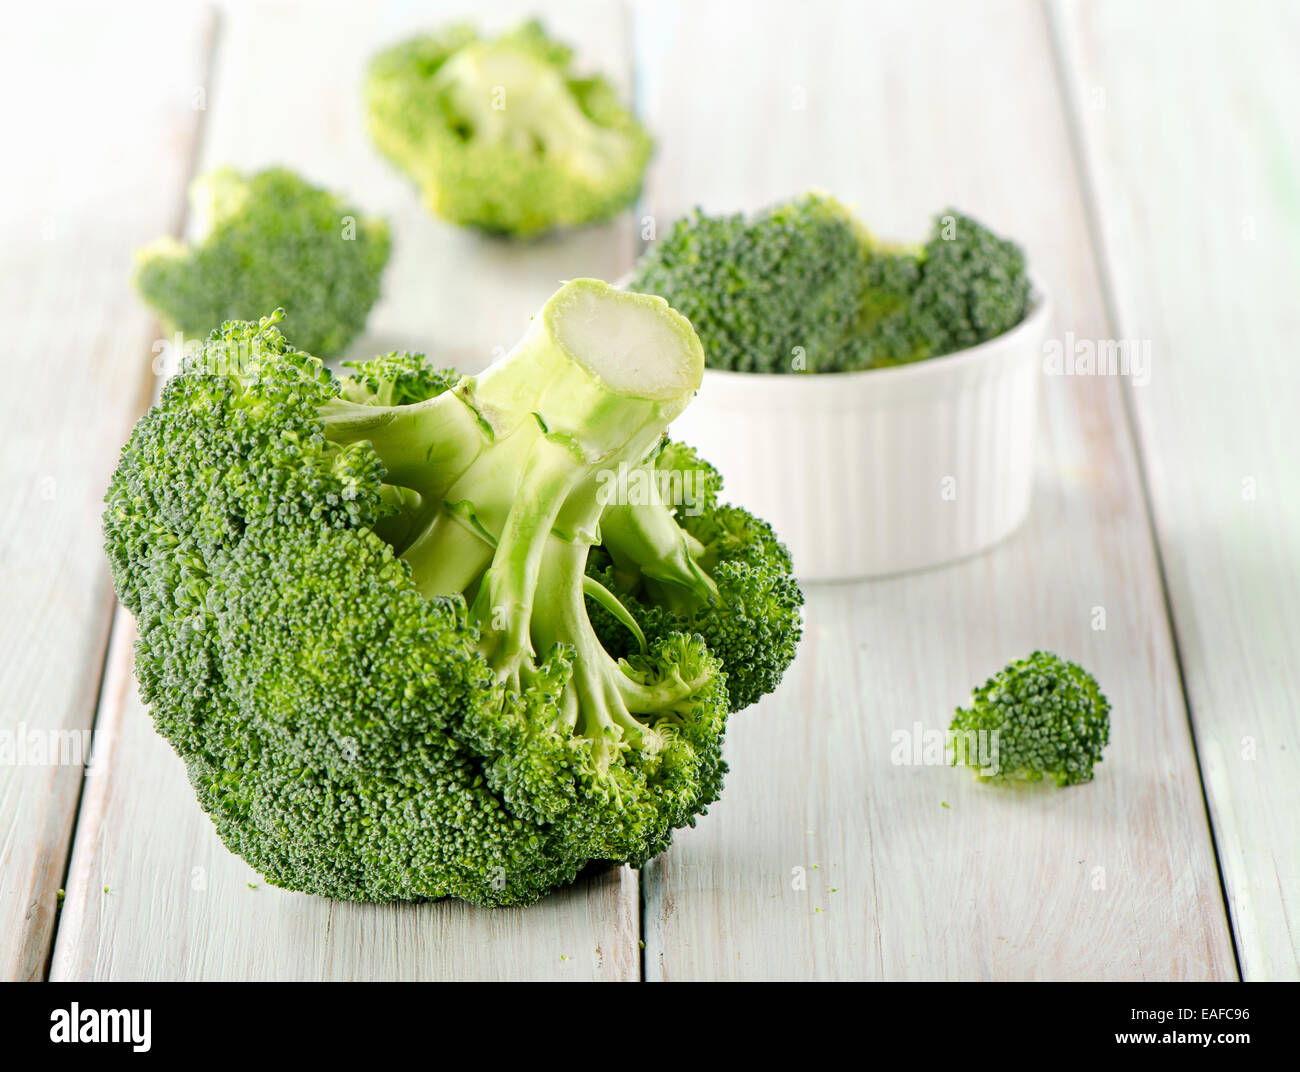 Broccoli on a wooden table. Selective focus - Stock Image